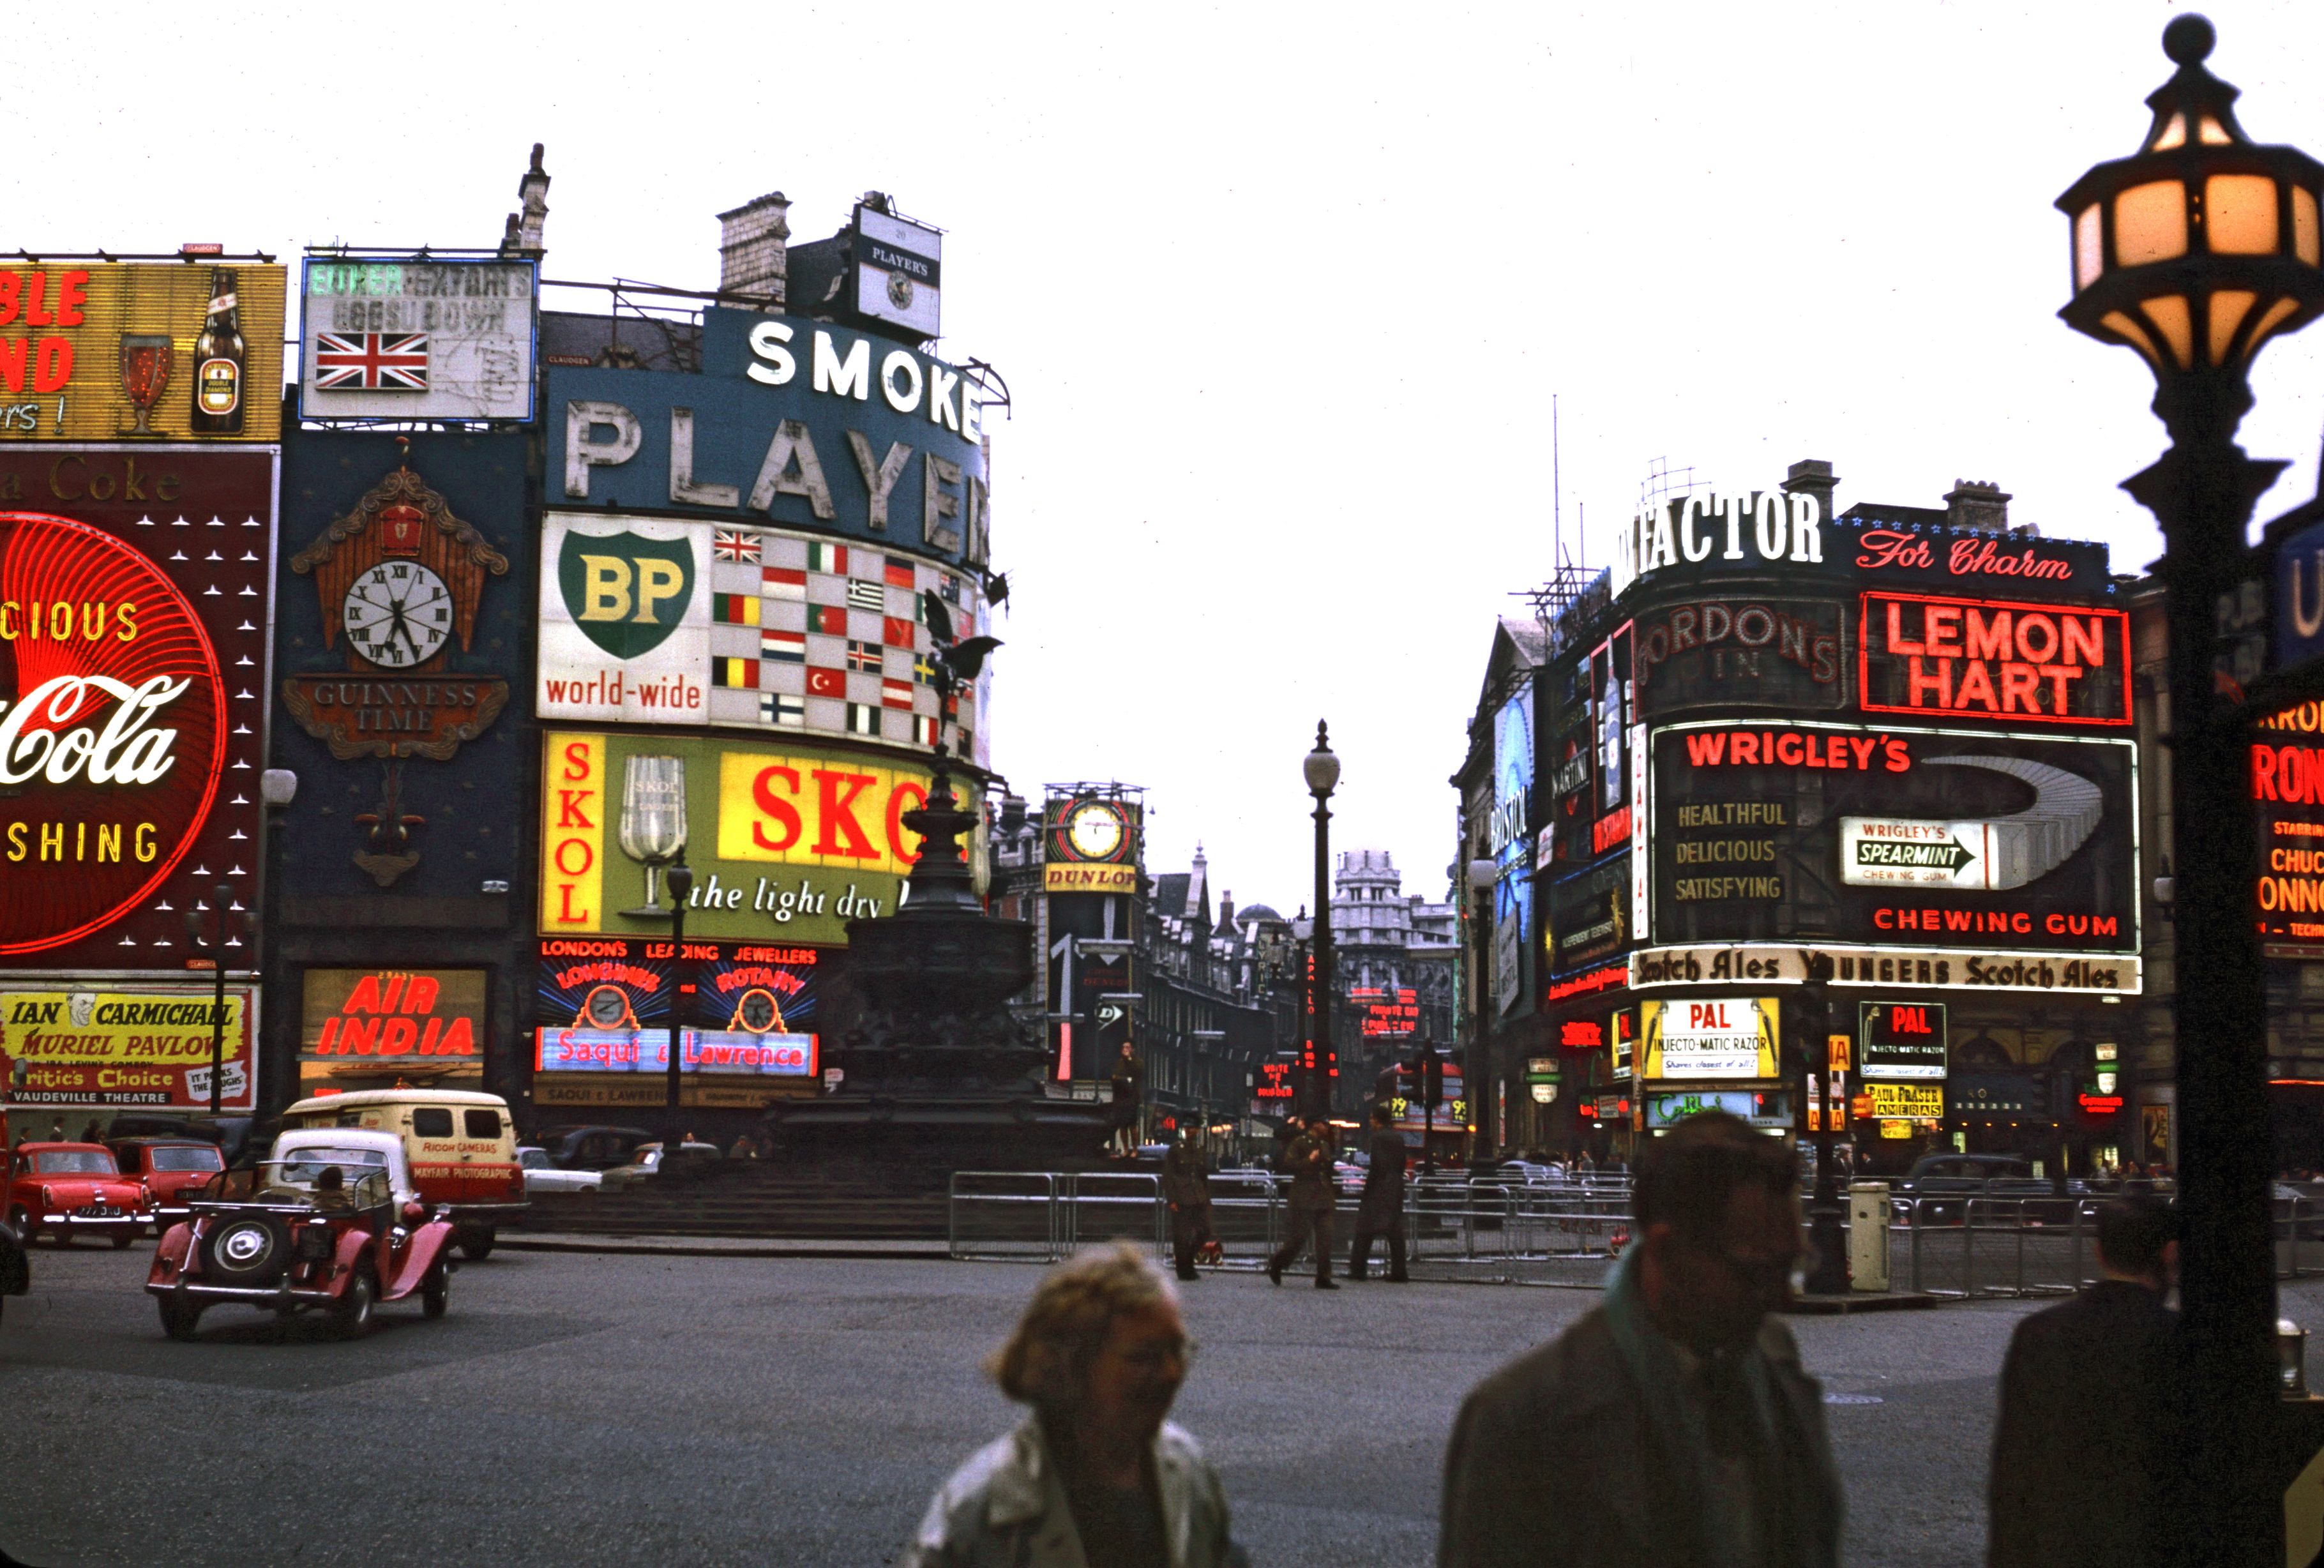 Piccadilly_Circus_in_London_1962_Brighter